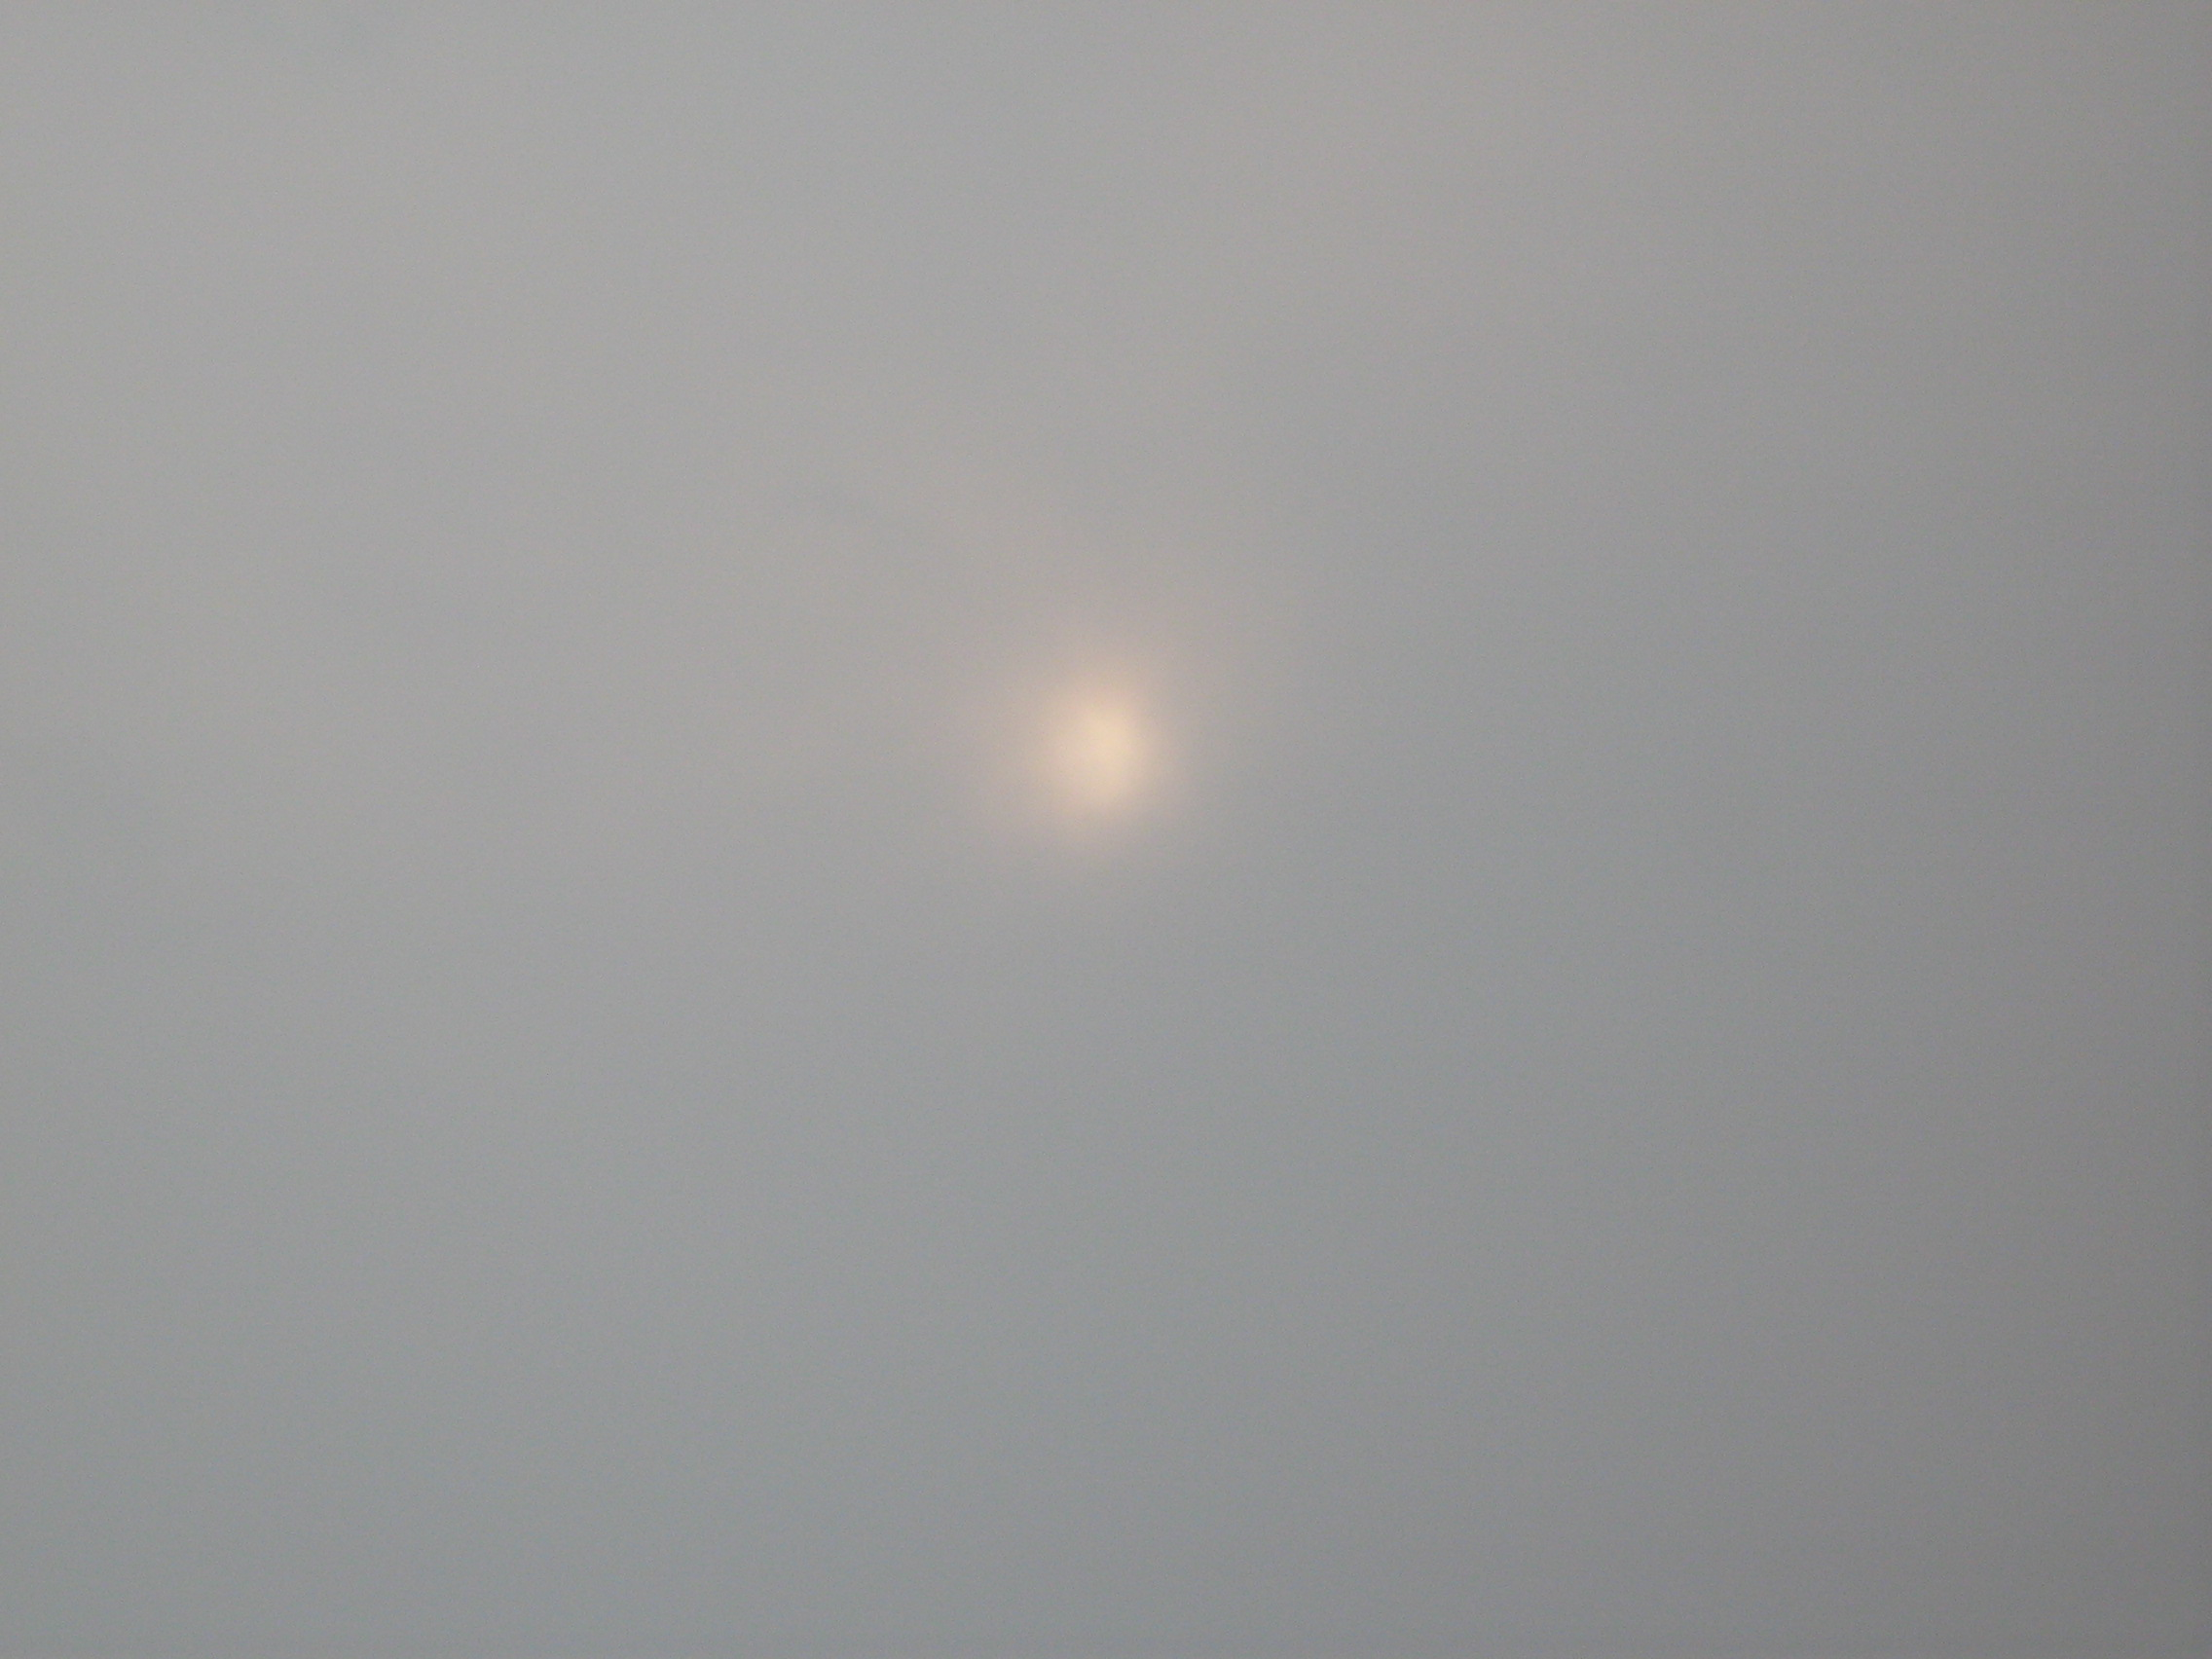 File:SG HAZE-obscured-sun.JPG - Wikimedia Commons